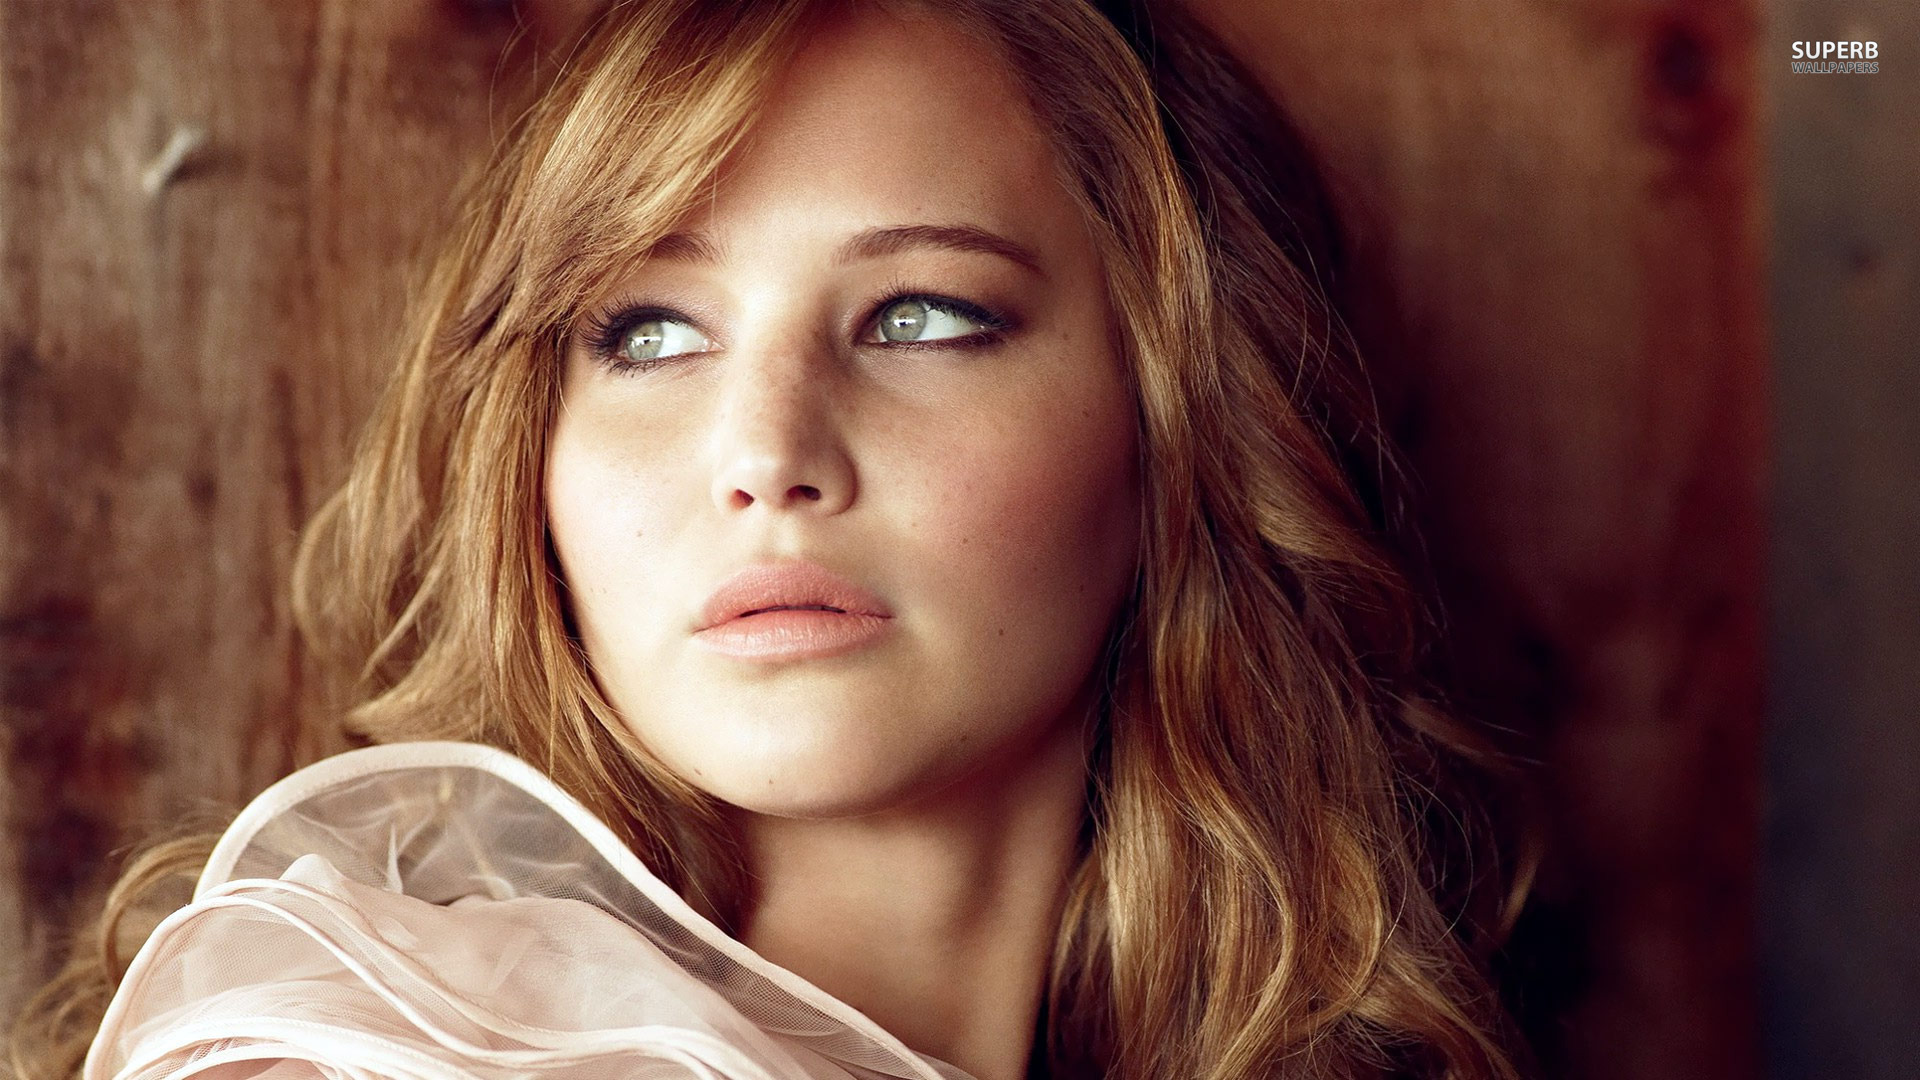 Jennifer Lawrence wallpaper 1920x1080 jpg